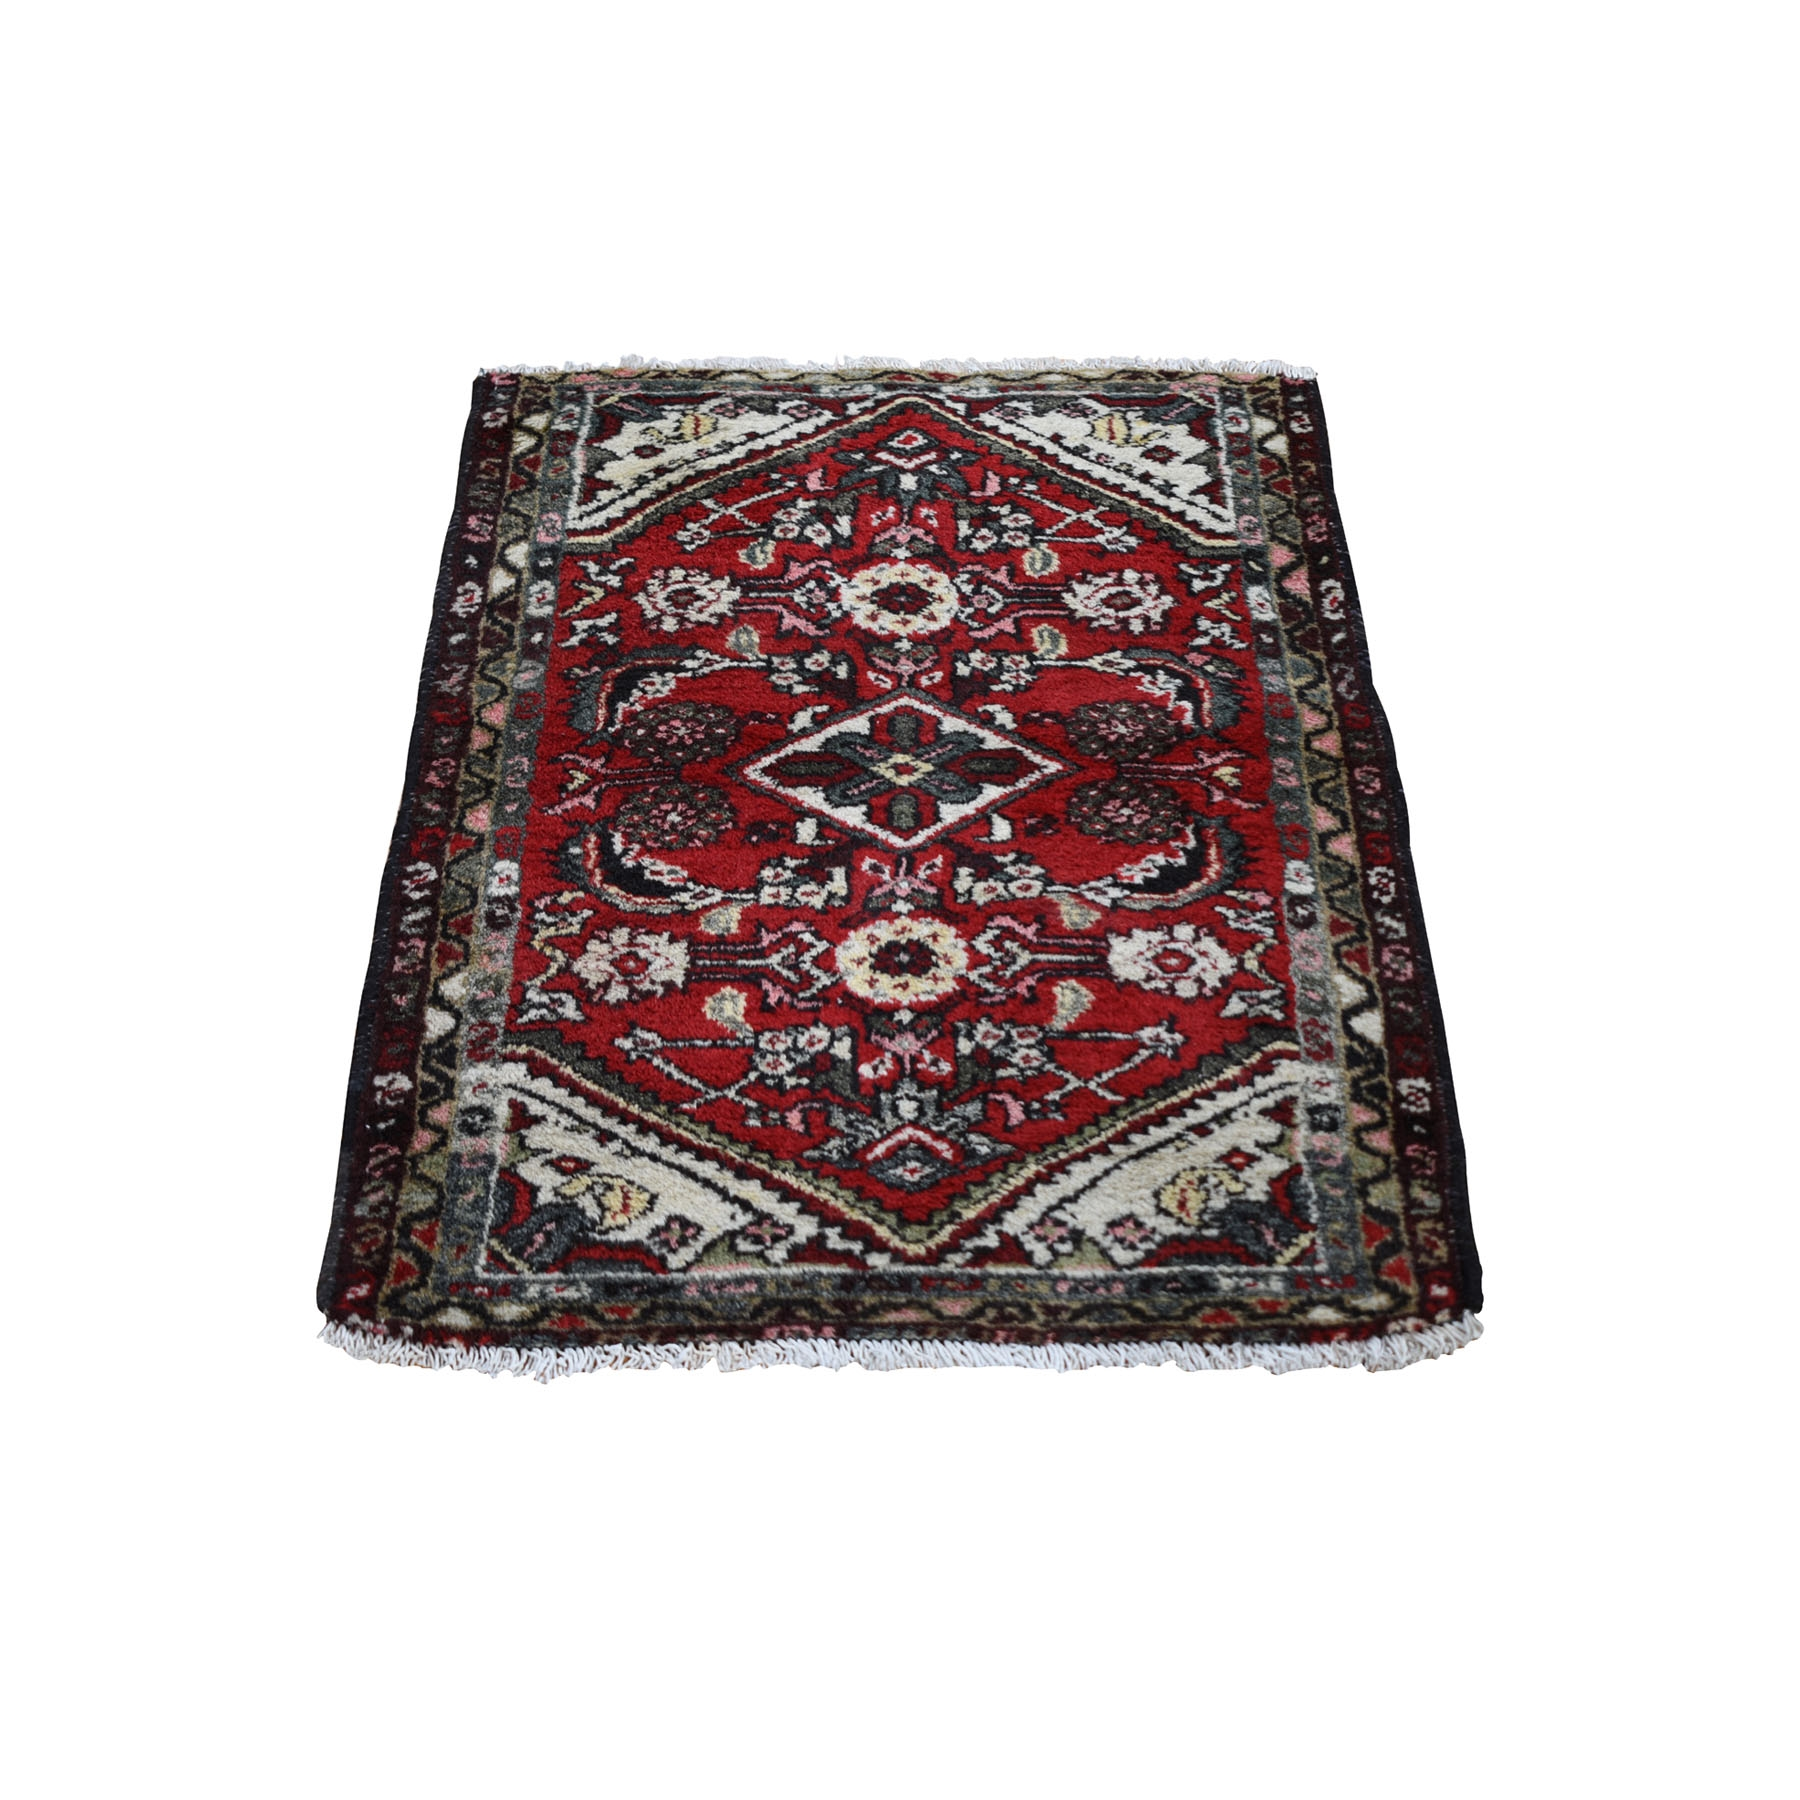 Antique Collection Hand Knotted Red Rug No: 0199674